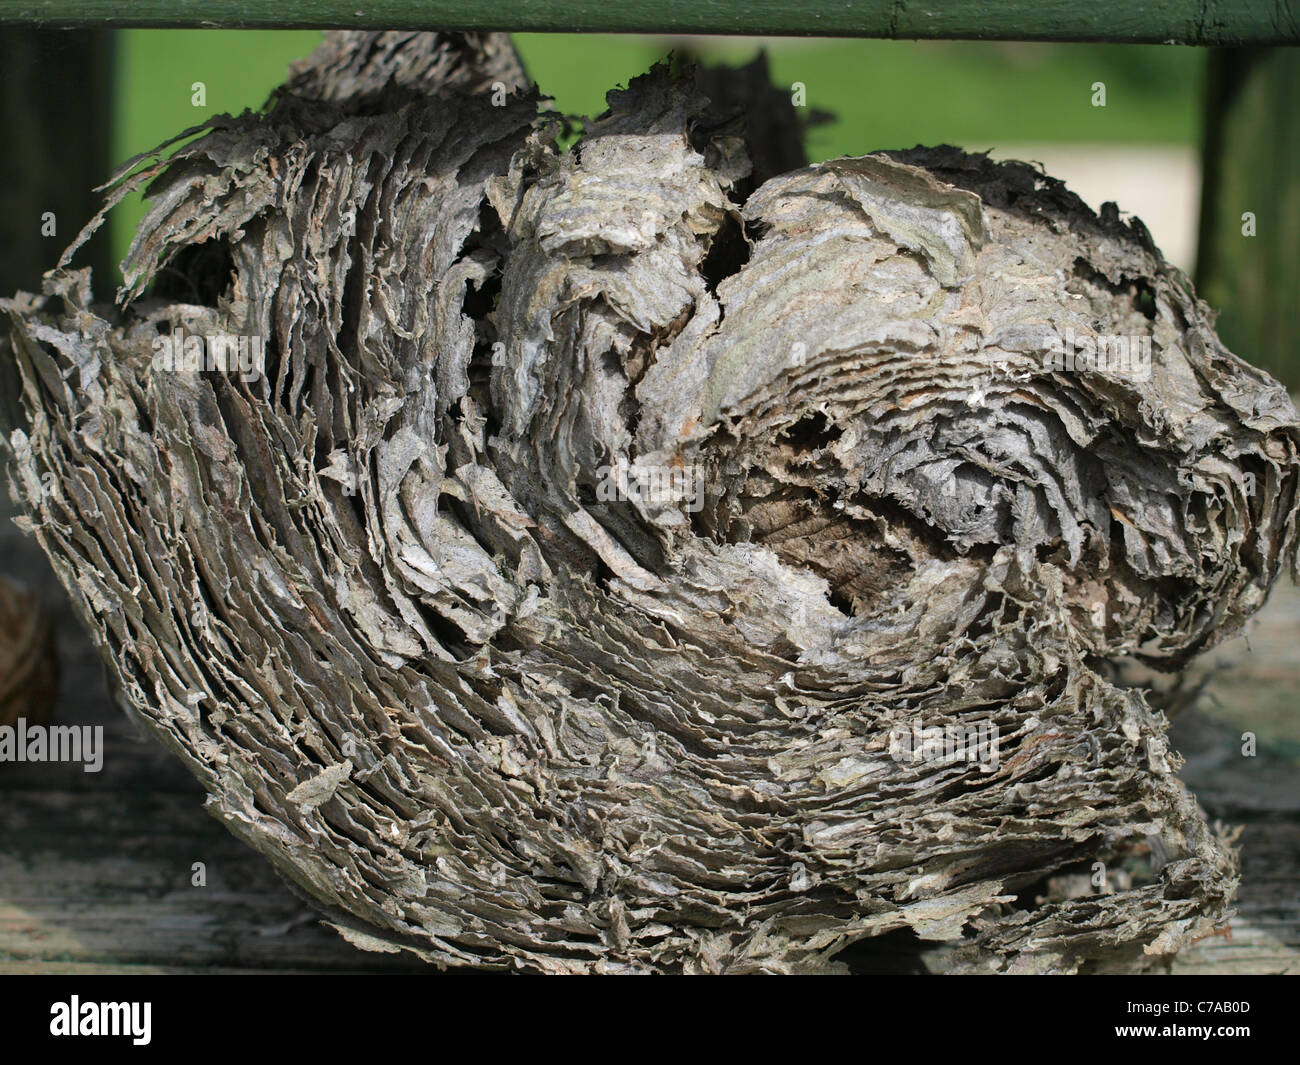 LAYERS UPON LAYERS (WASP NEST).this is a side profile of a VESPULA VULGARIS,or common wasps nest,multiple layers - Stock Image